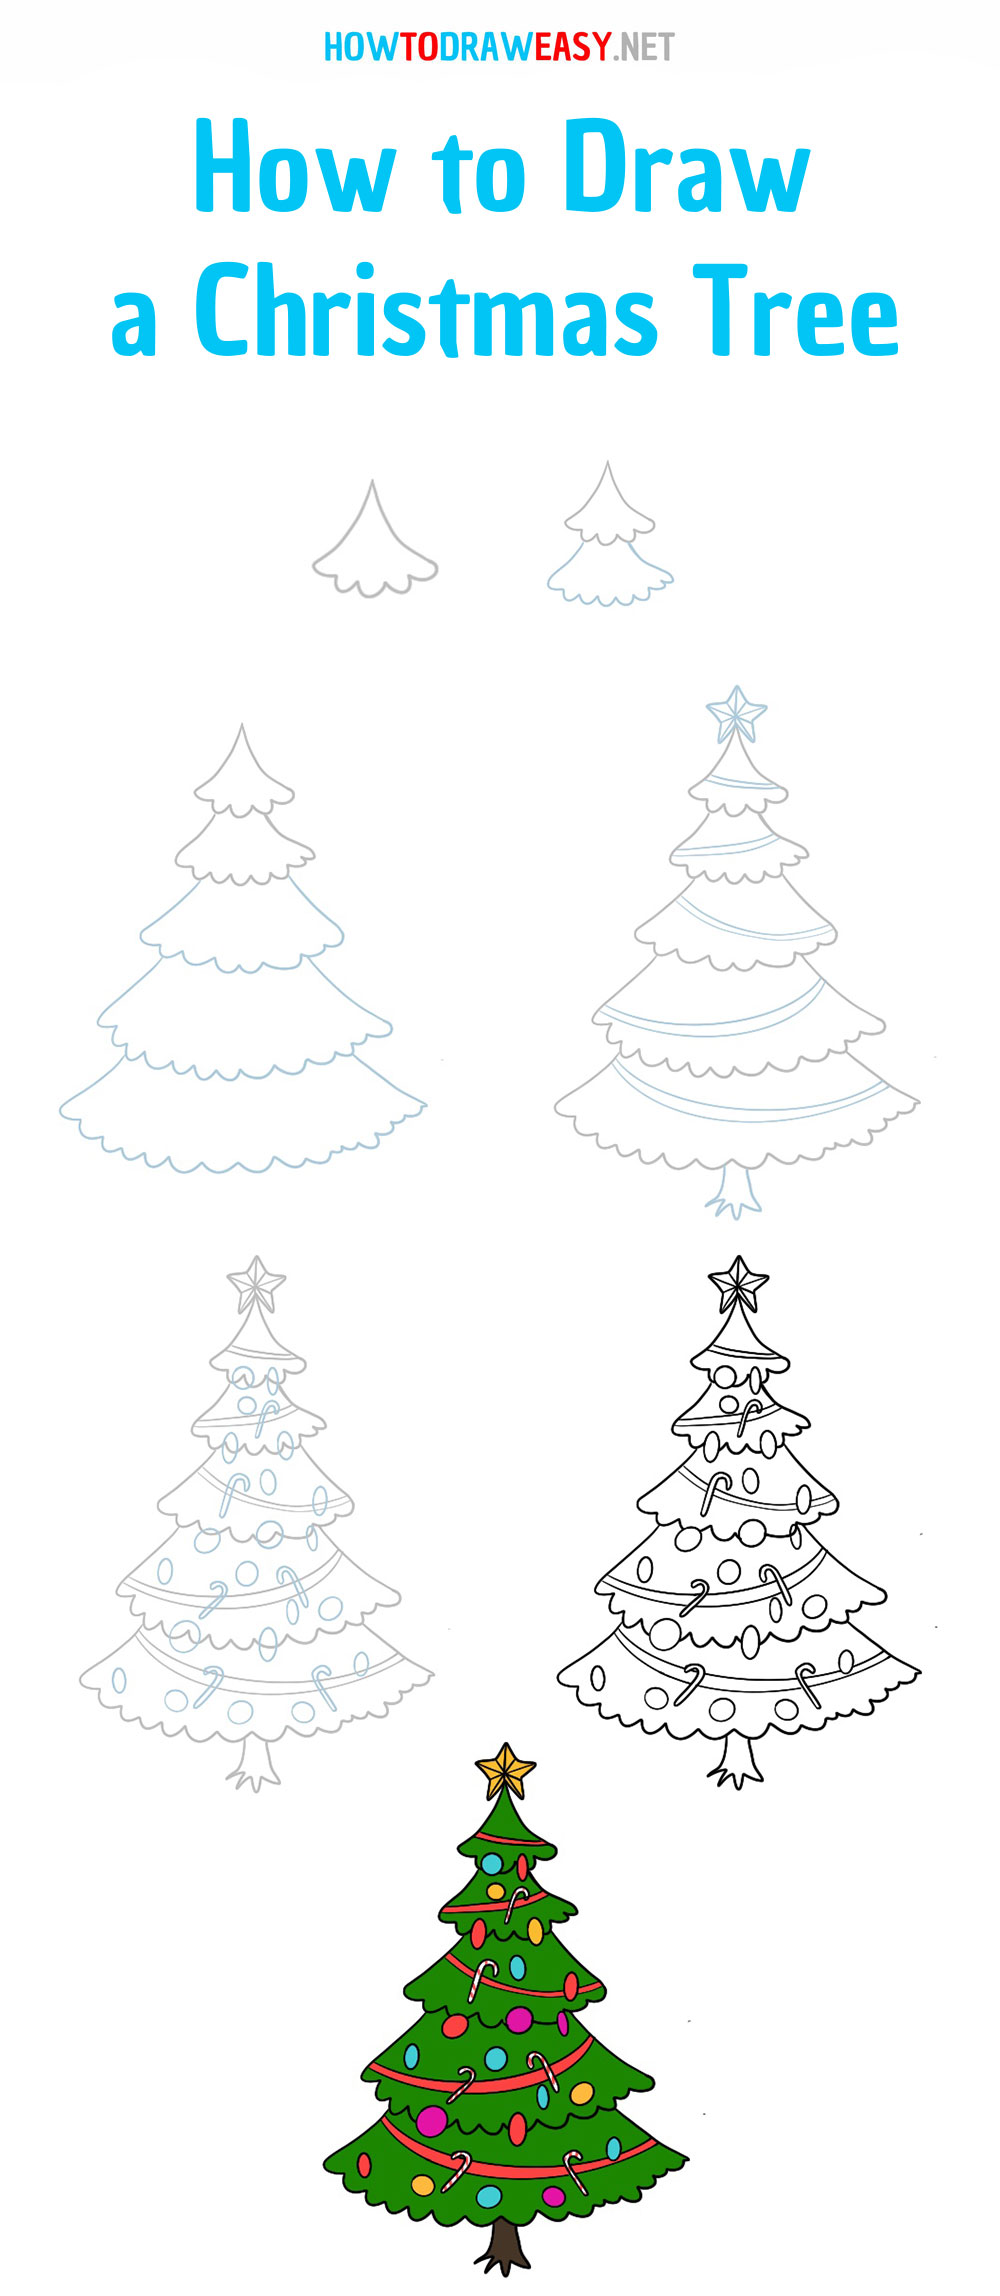 how-to-draw-a-christmas-tree-easy-step-by-step-for-beginners